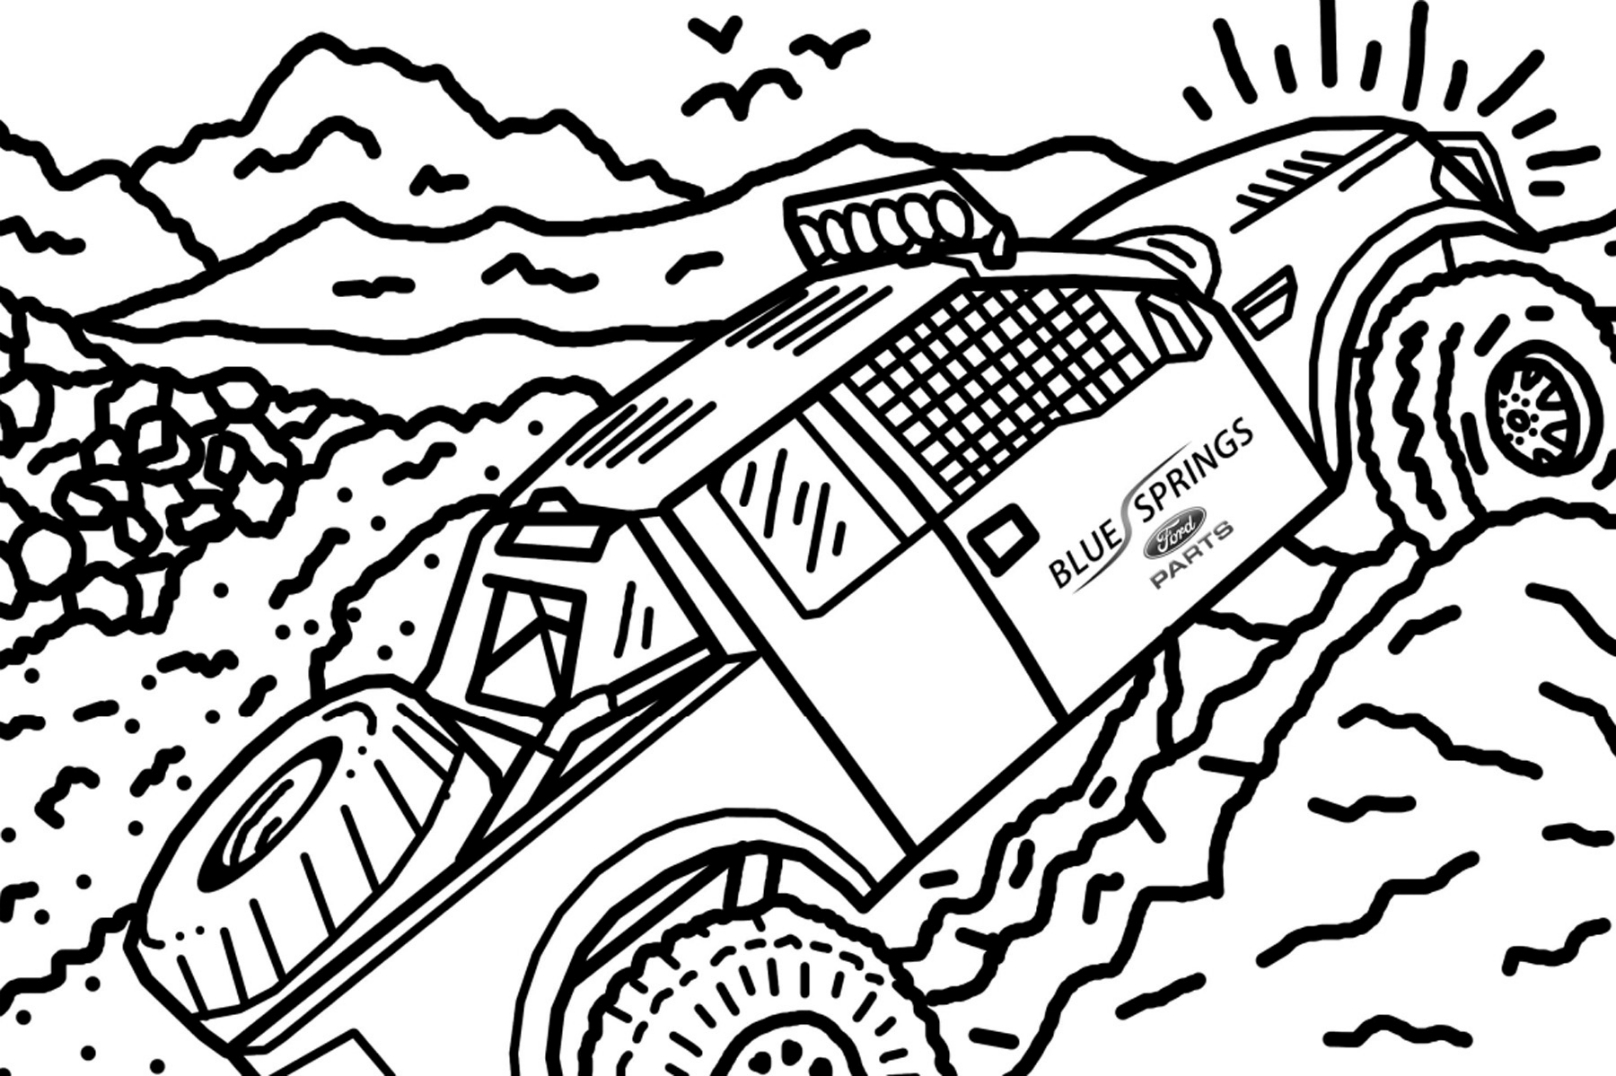 Ford Posts Free Online Raptor Colouring Book – WHEELS.ca